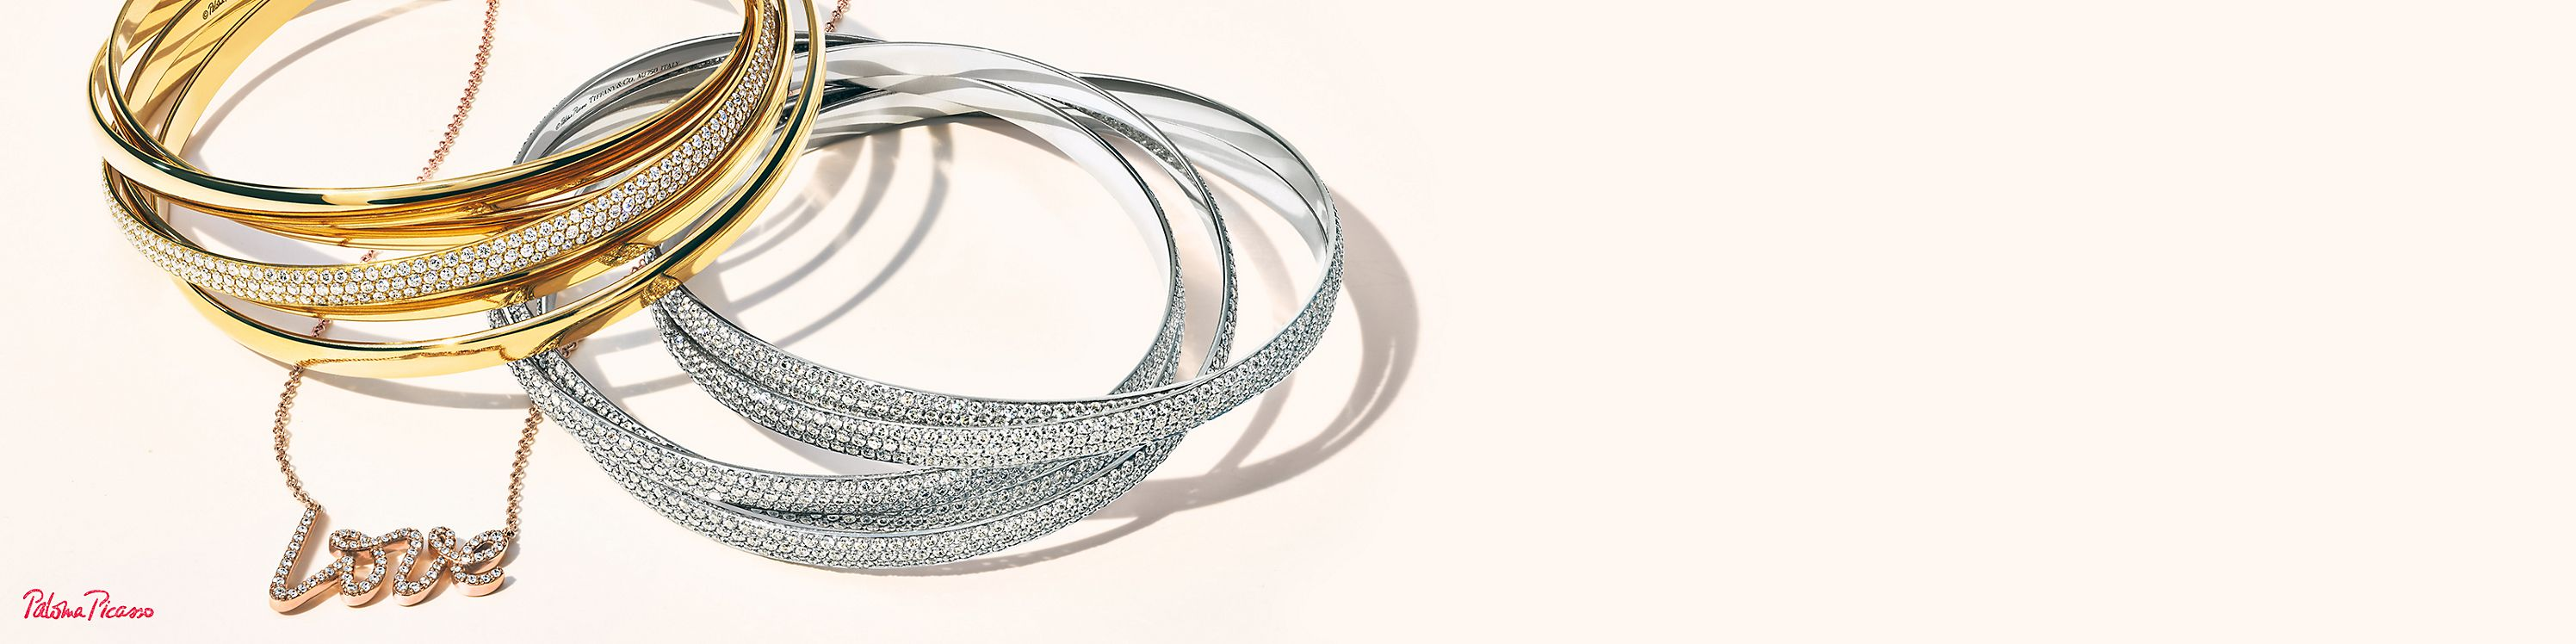 Shop Tiffany & Co.'s Paloma Picasso® Collection